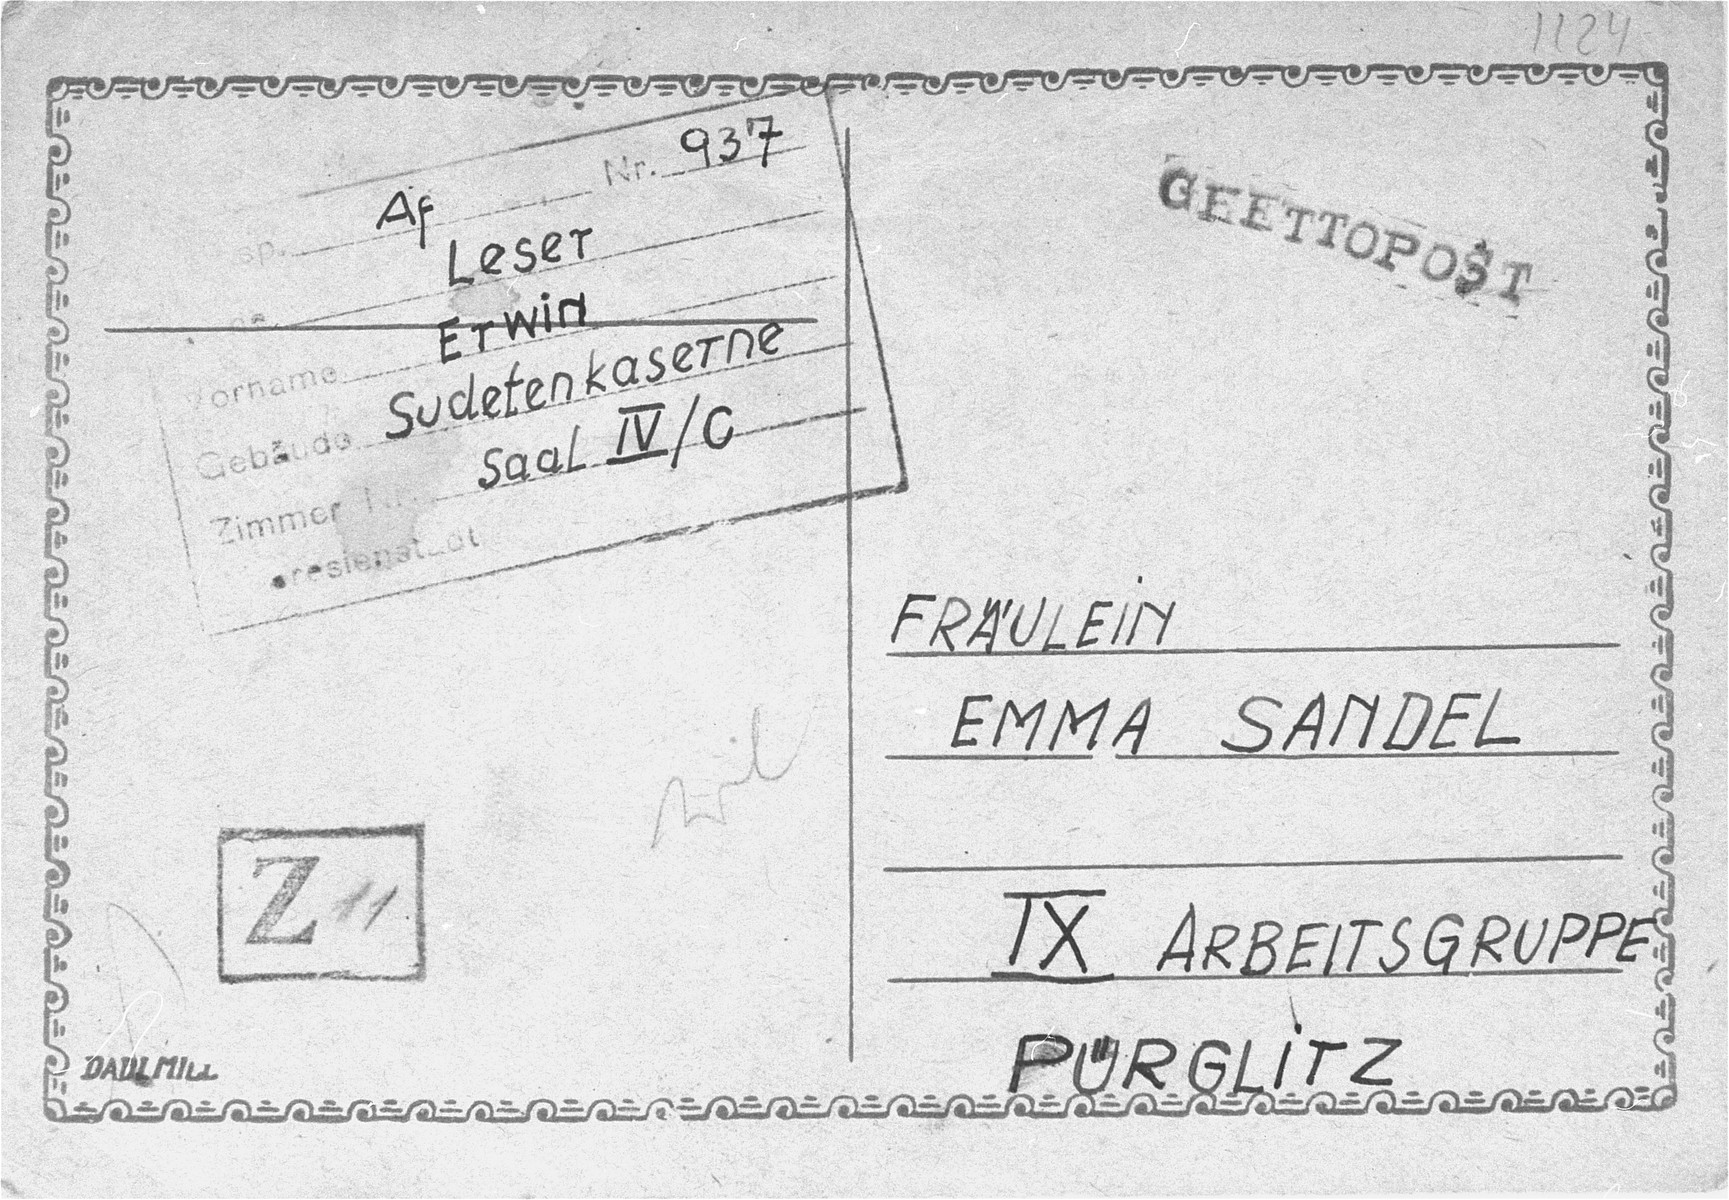 The front of a post card sent from Erwin Leser, a German Jewish prisoner in Theresienstadt, to Emma Sandel.